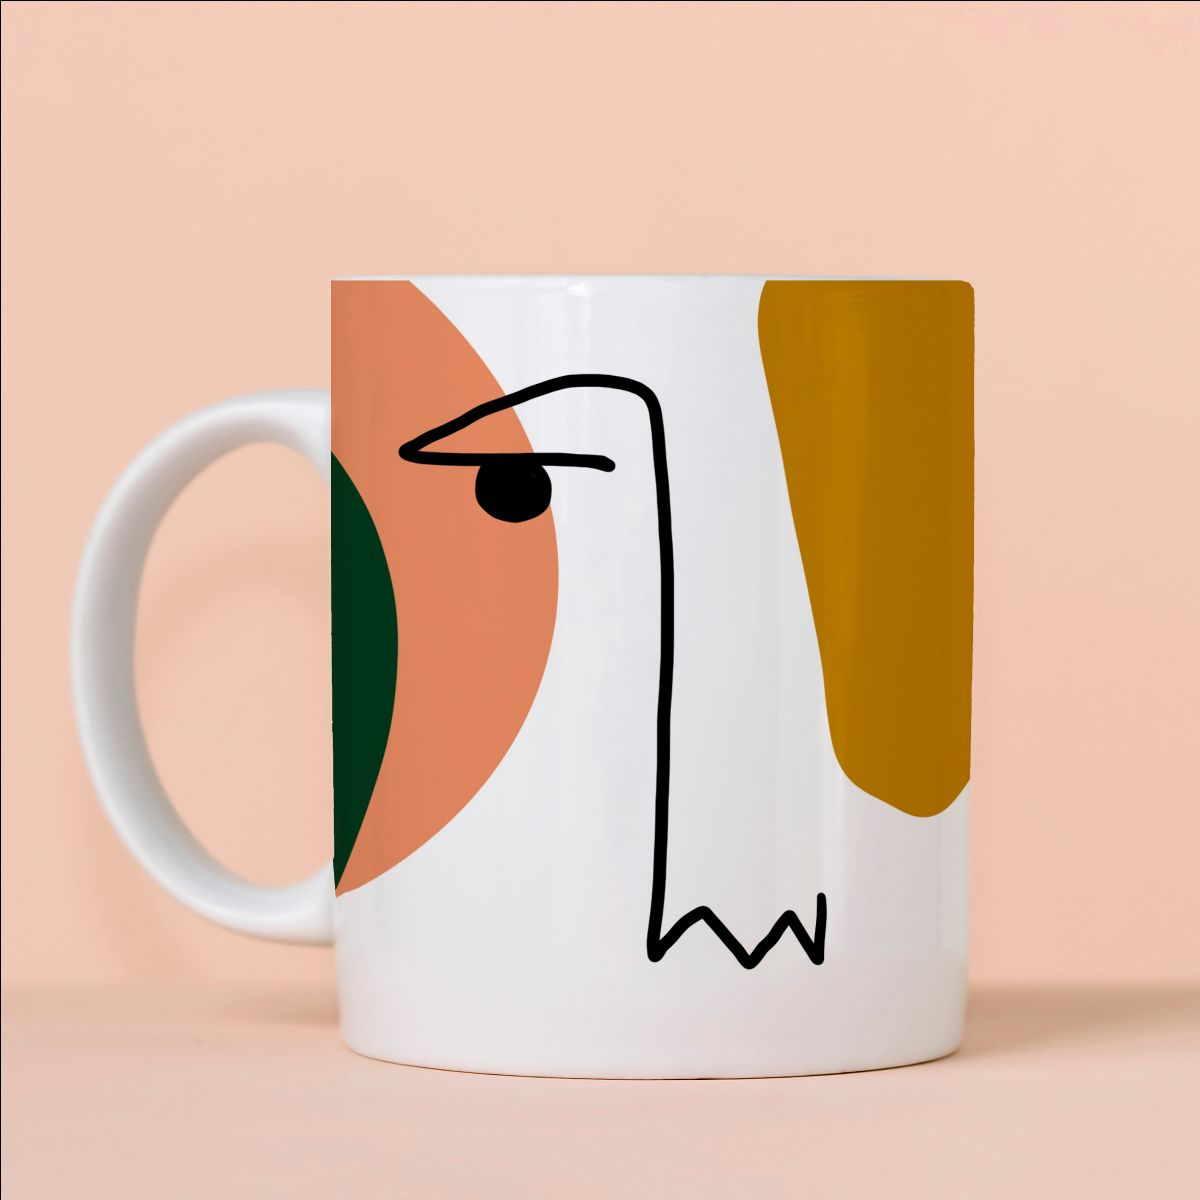 Unique cofee mugs